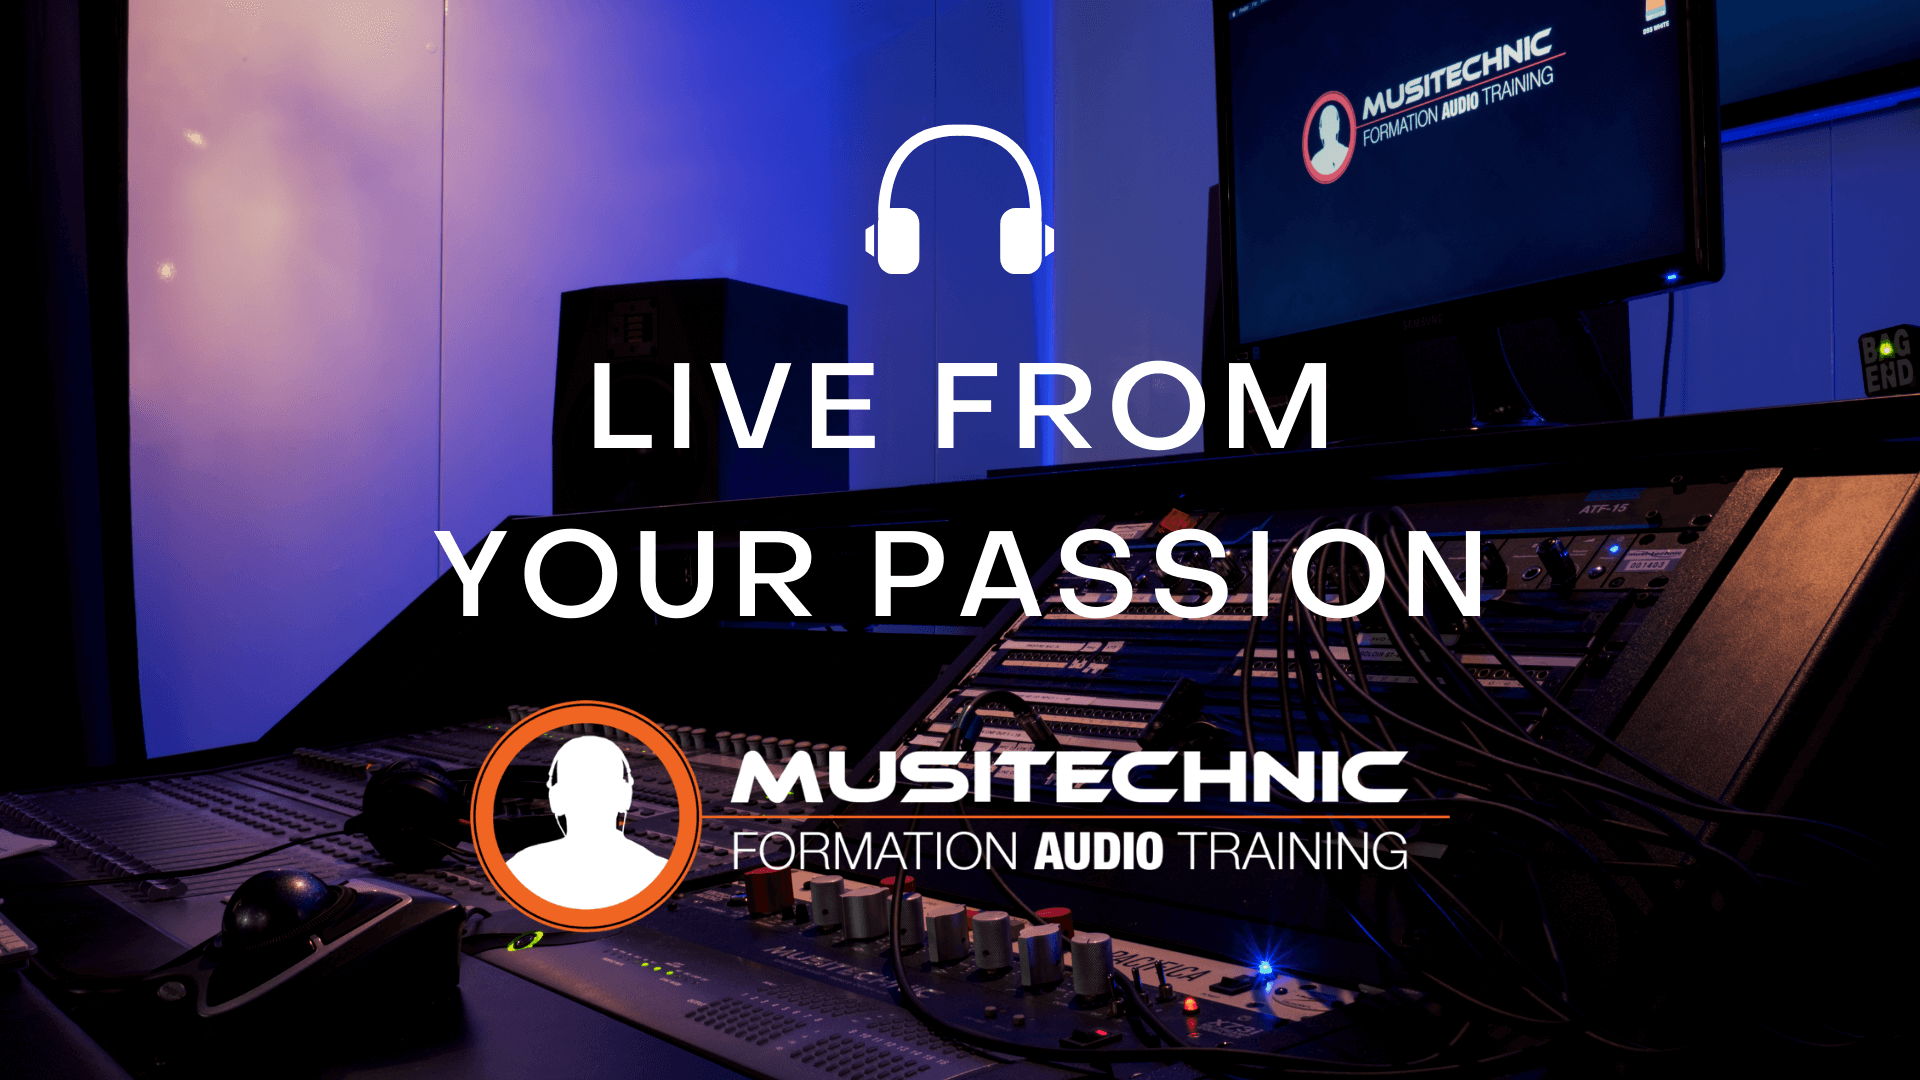 Live from your passion - Musitechnic